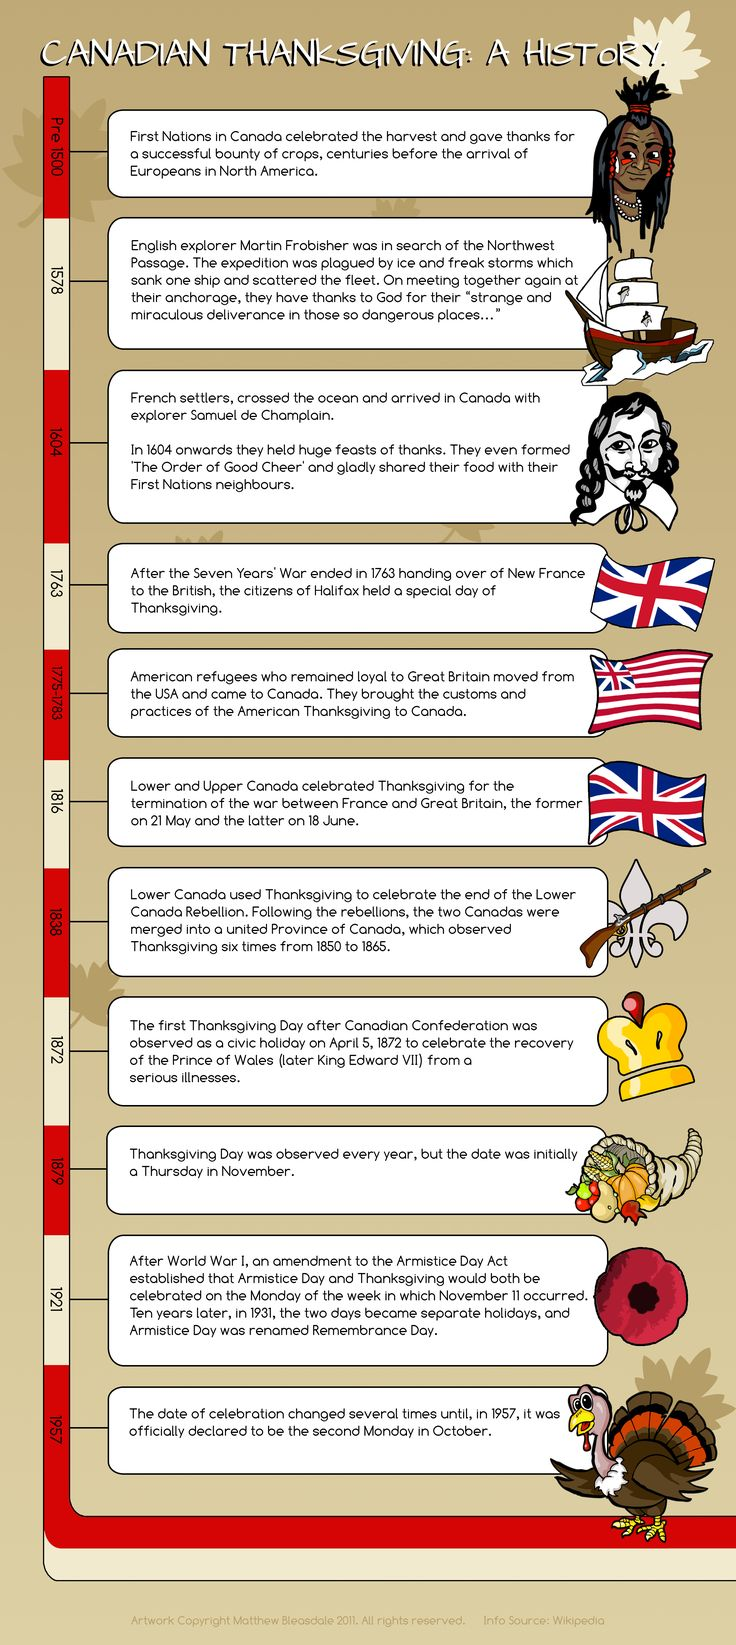 The History of Canadian Thanksgiving (Infographic)